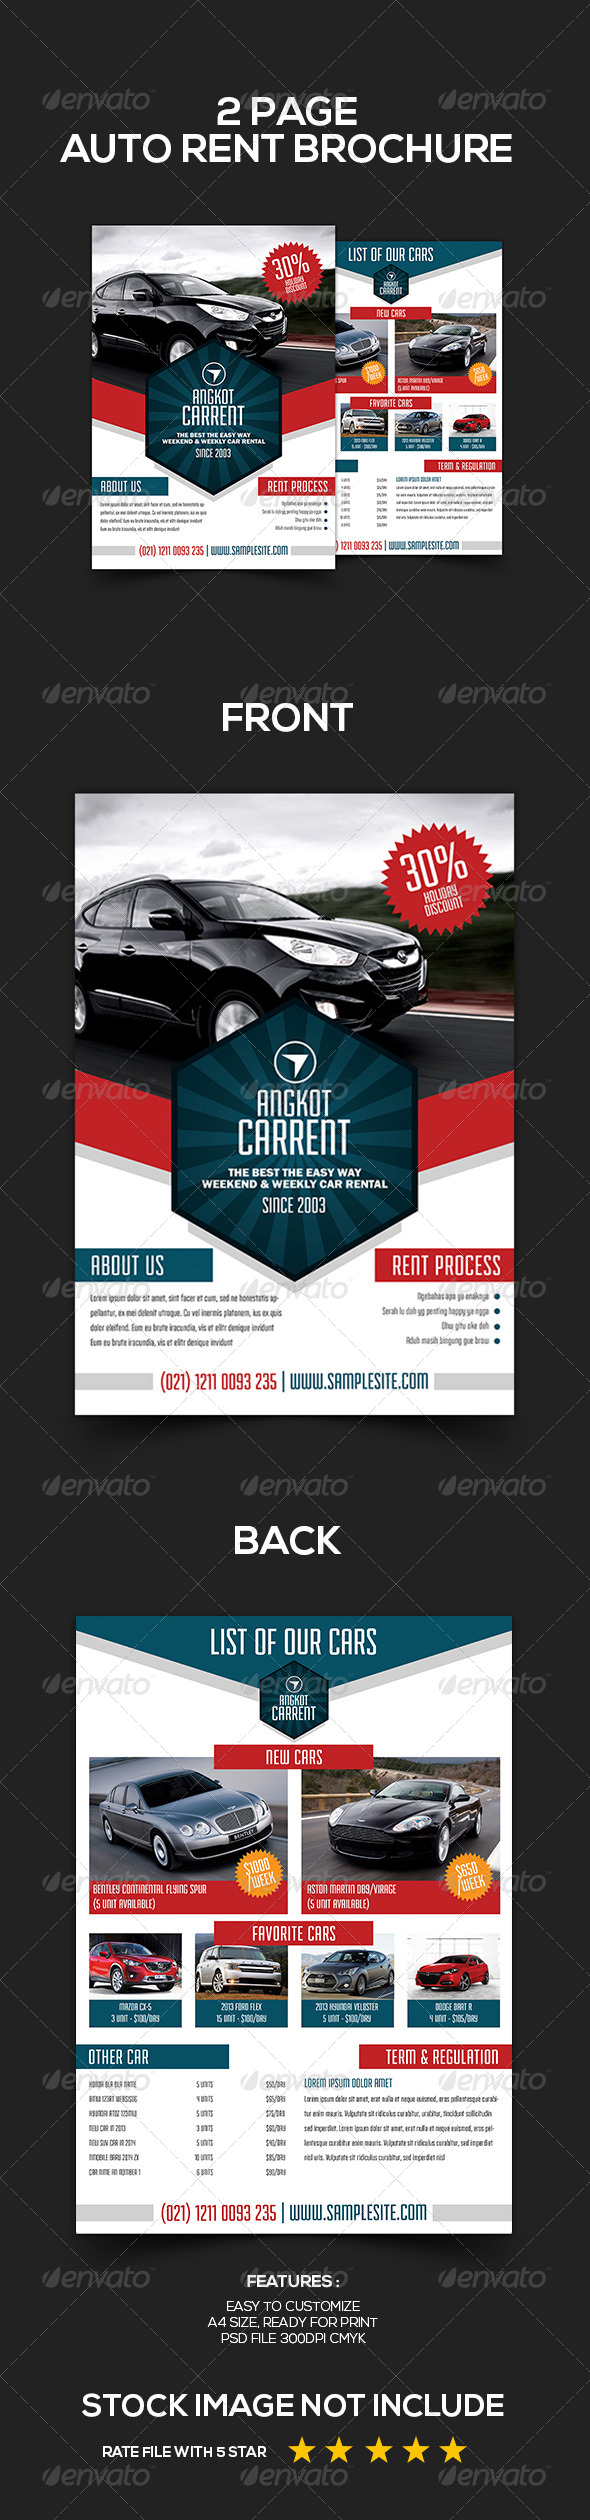 GraphicRiver Rent a Car Brochure Template 5518032